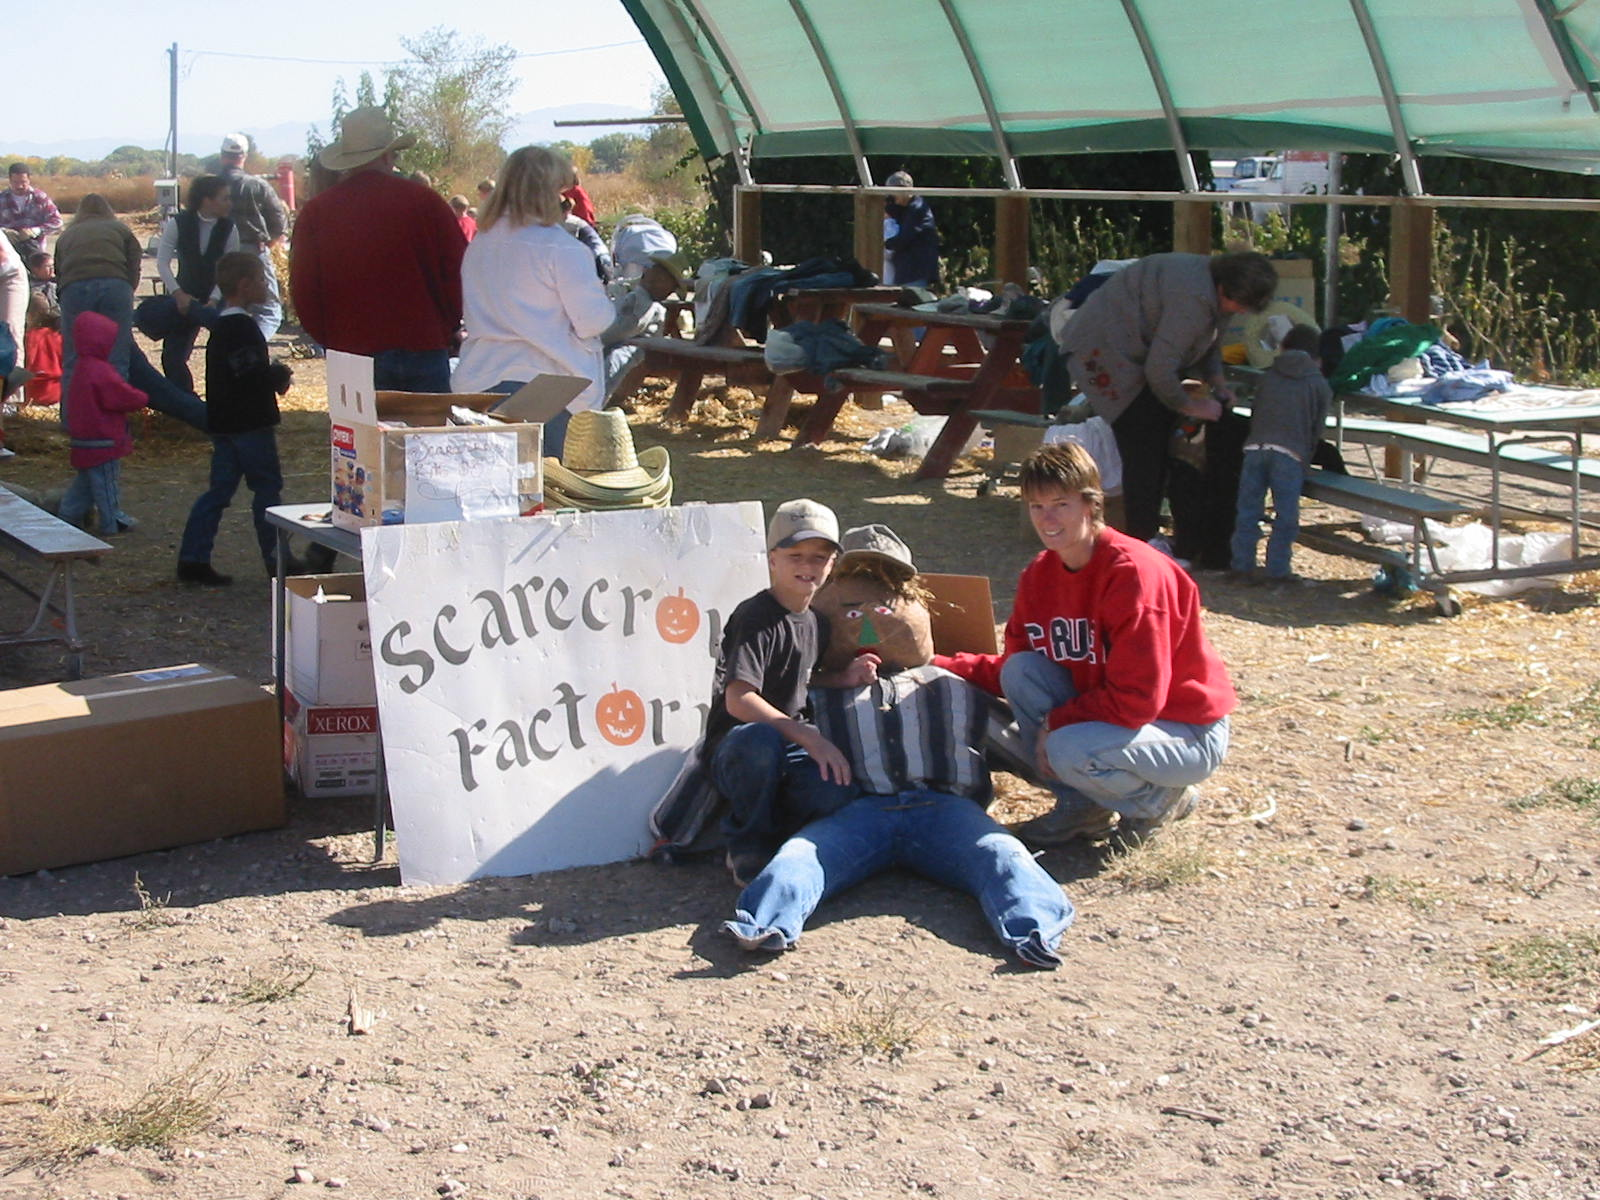 People Hold Their Scarecrow Next to Scarecrow Factory Sign